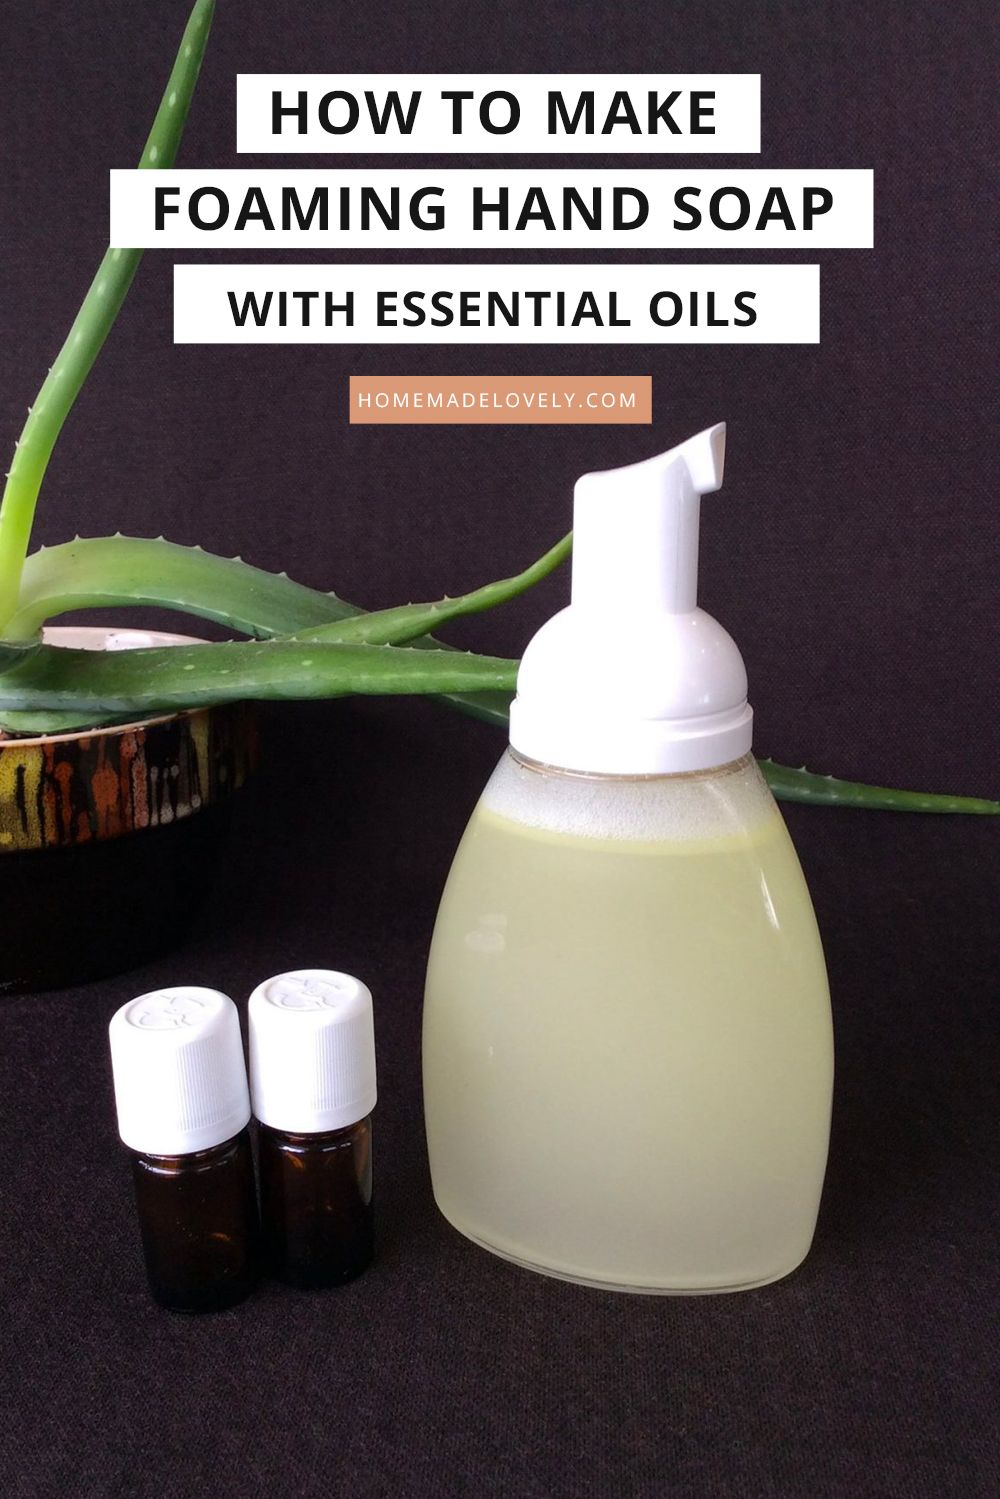 DIY Foaming Hand Soap with Essential Oils Recipe Soap